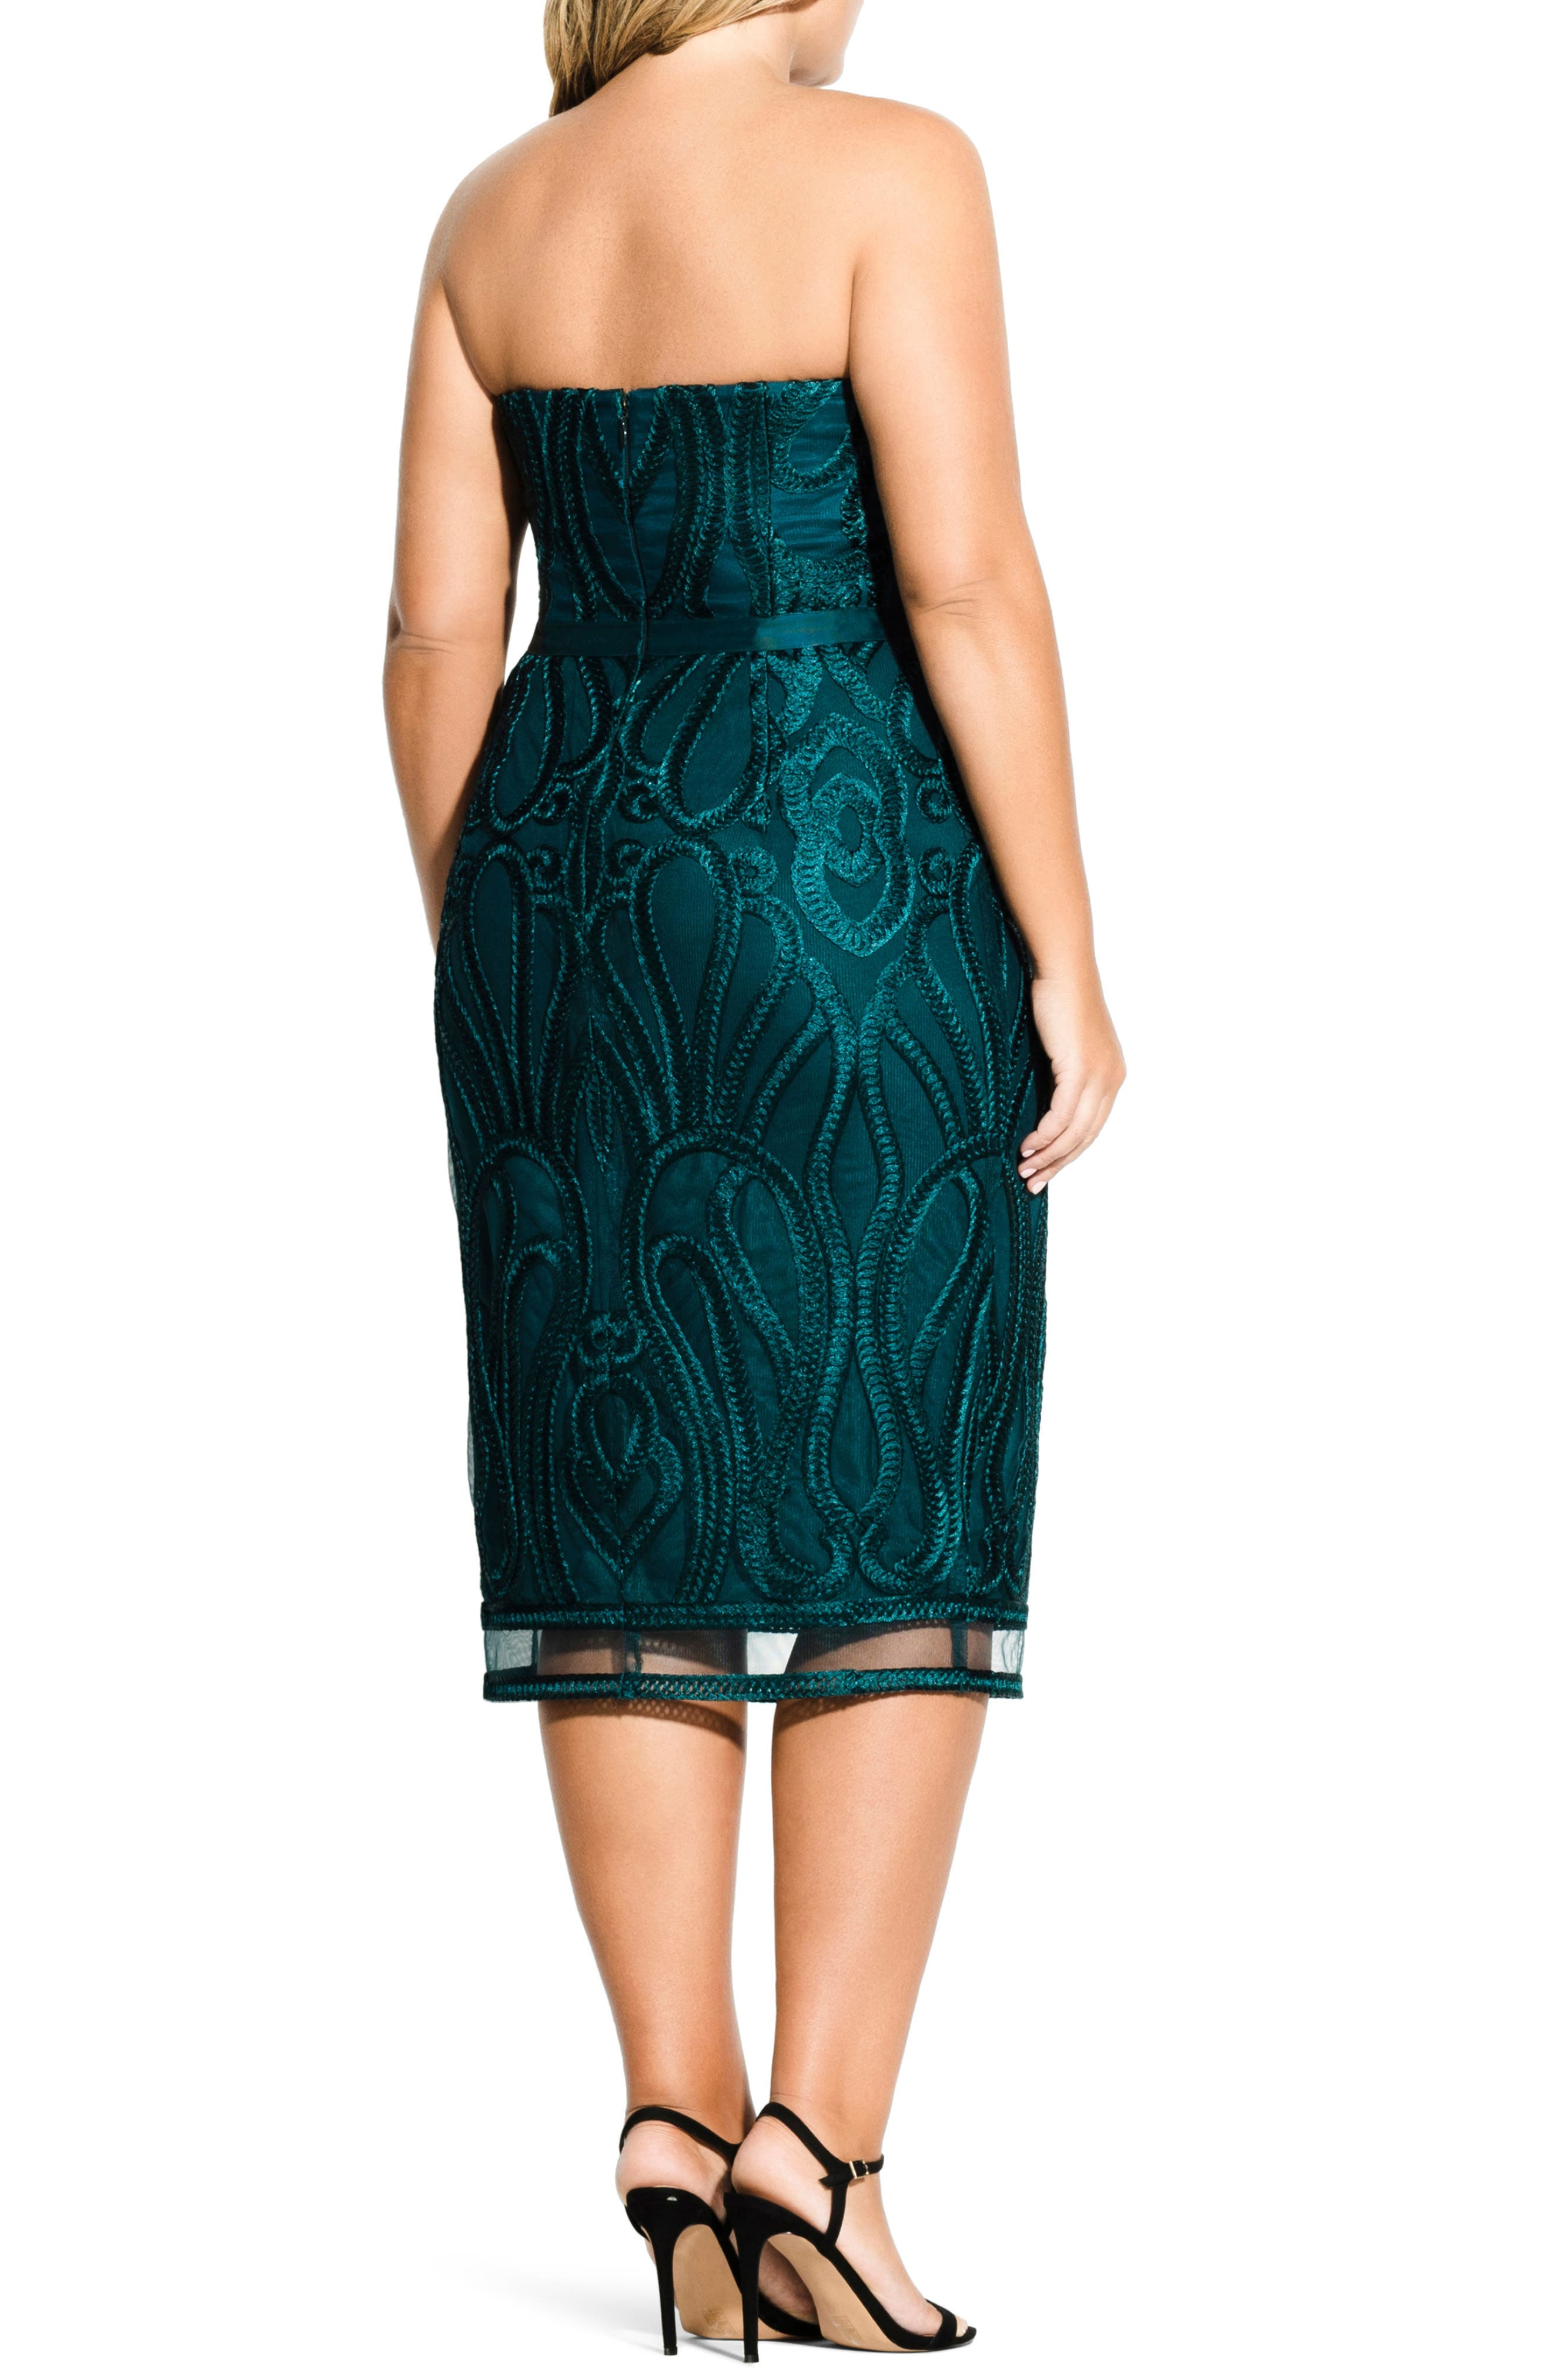 CITY CHIC, Antonia Strapless Sheath Dress, Alternate thumbnail 2, color, EMERALD